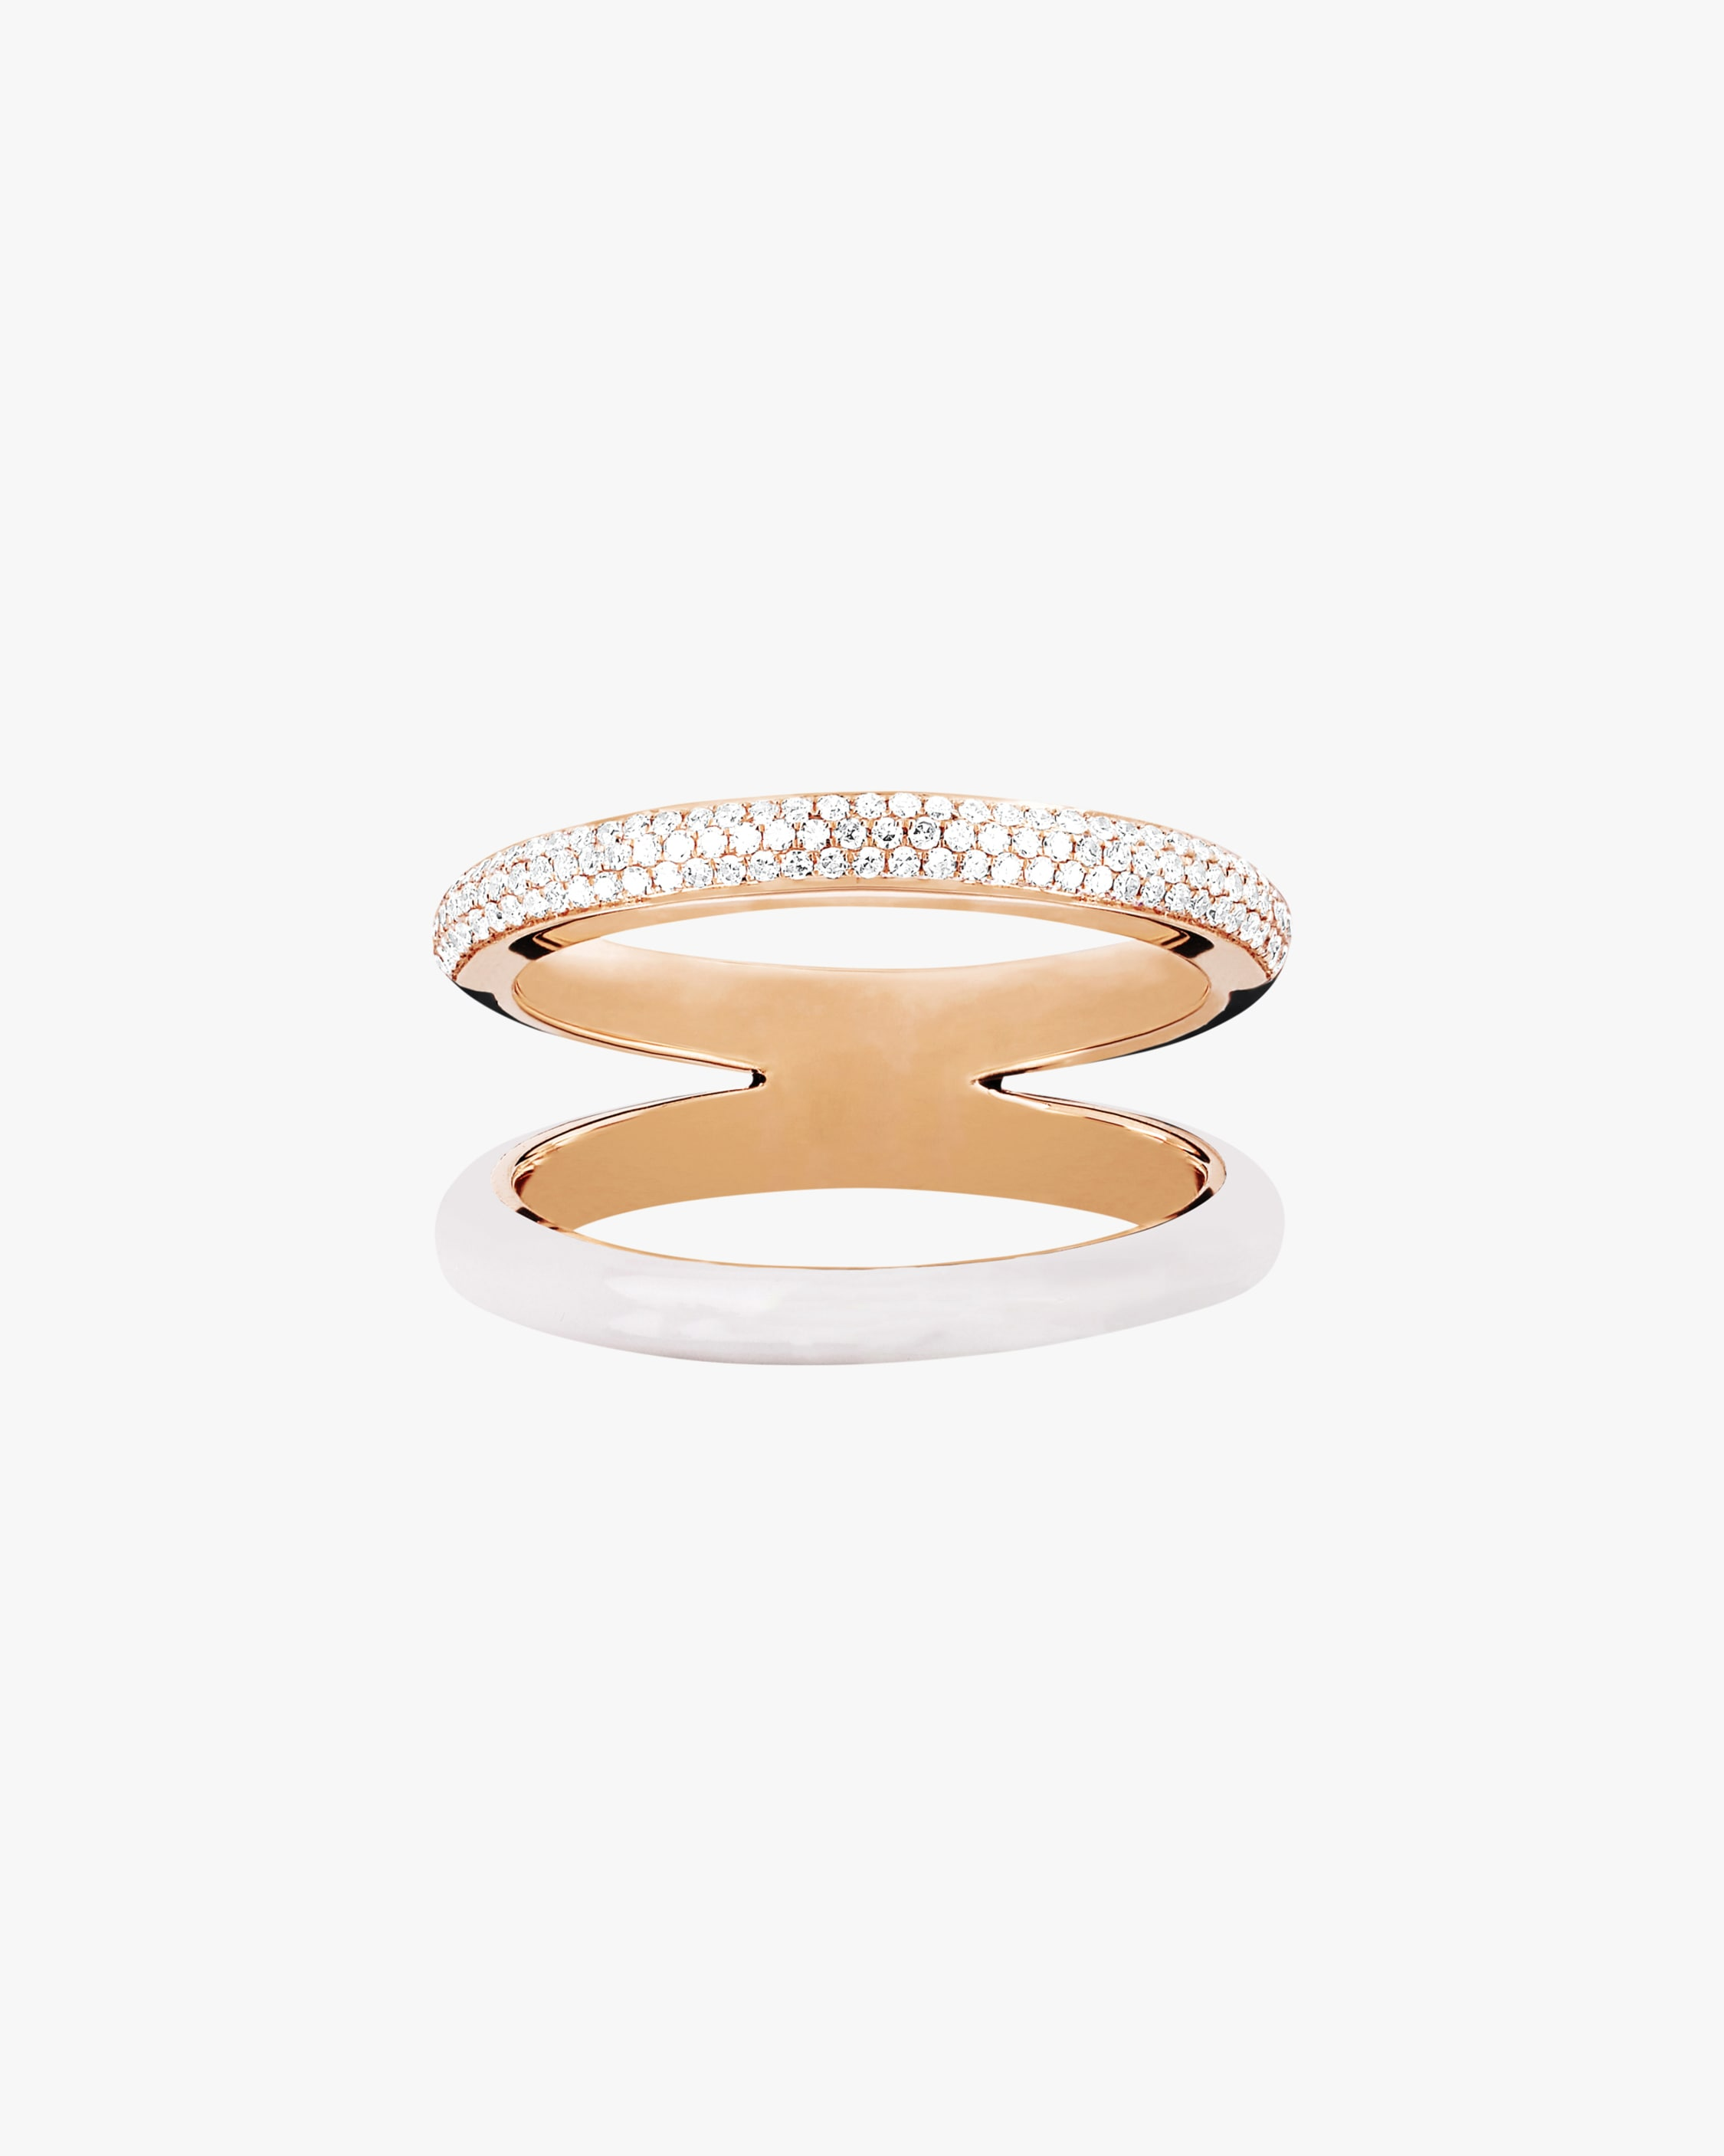 Ef Collection TWO-TONE DIAMOND DOUBLE-BAND RING